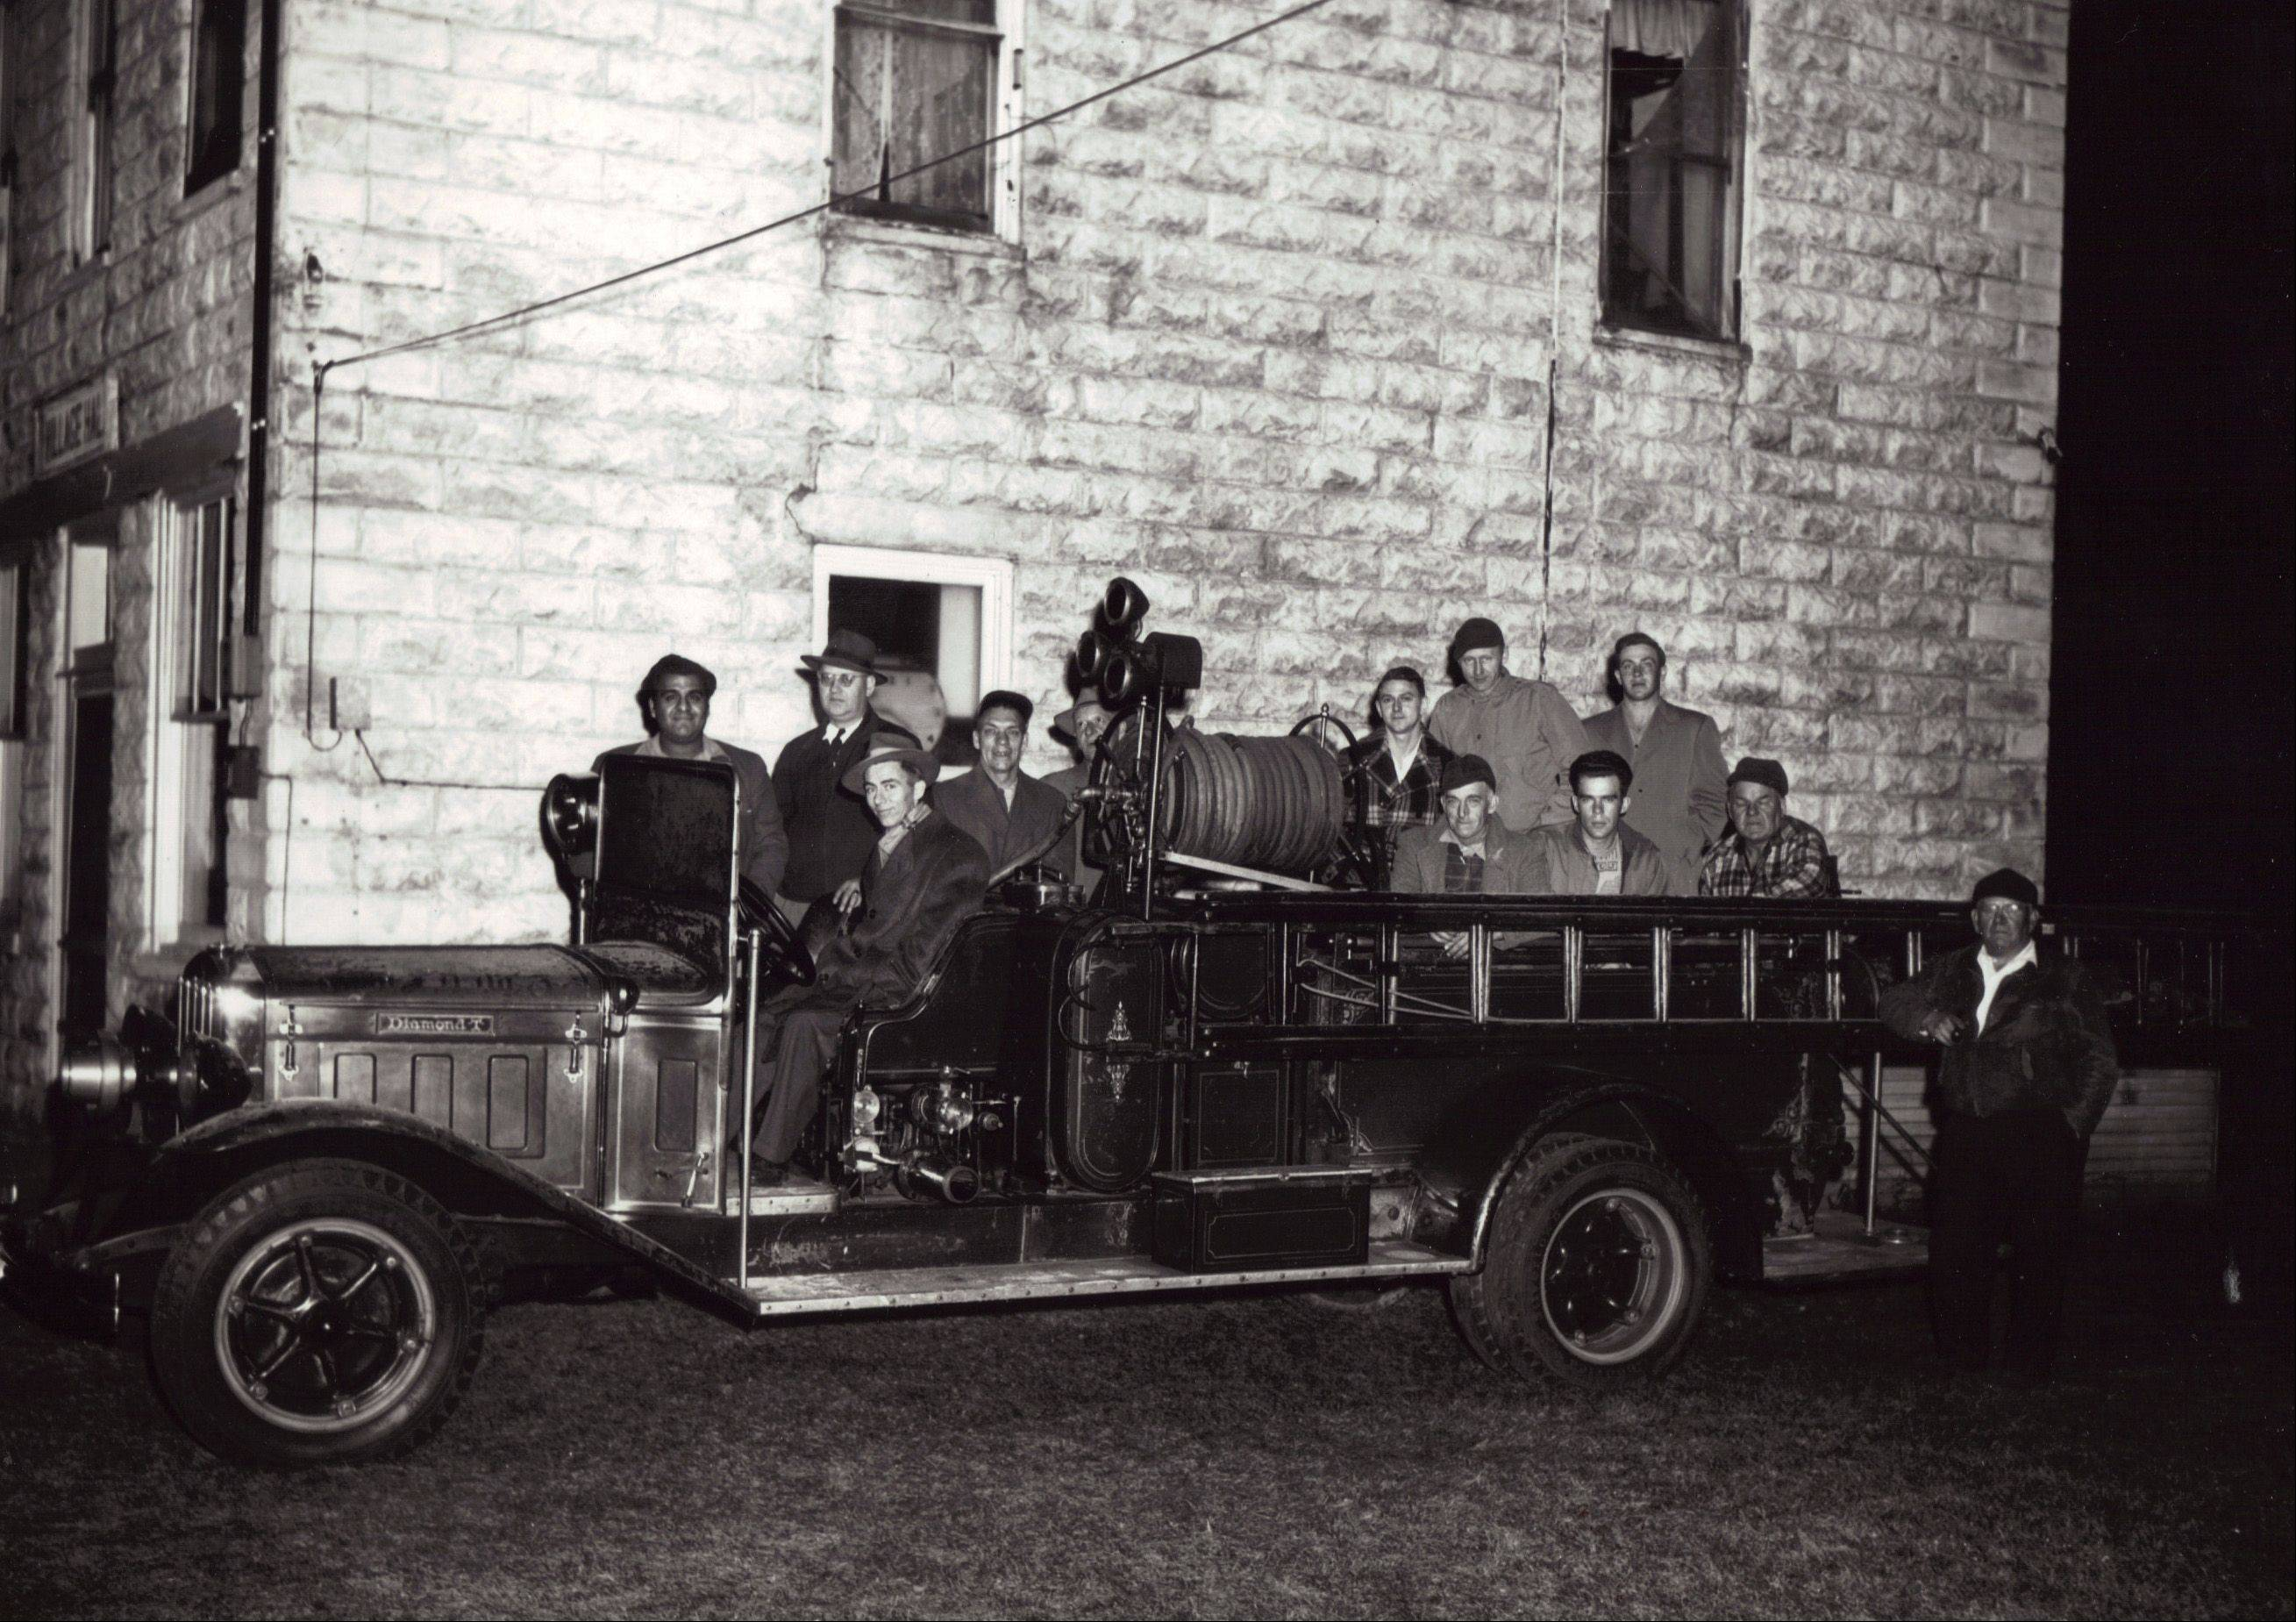 Bernard �Barney� Medina, far left, is pictured here with the first fire truck of the Pingree Grove & Countryside Fire Protection District, which he helped found as an all-volunteer operation with his brother-in-law John J. Schmitz in 1947.